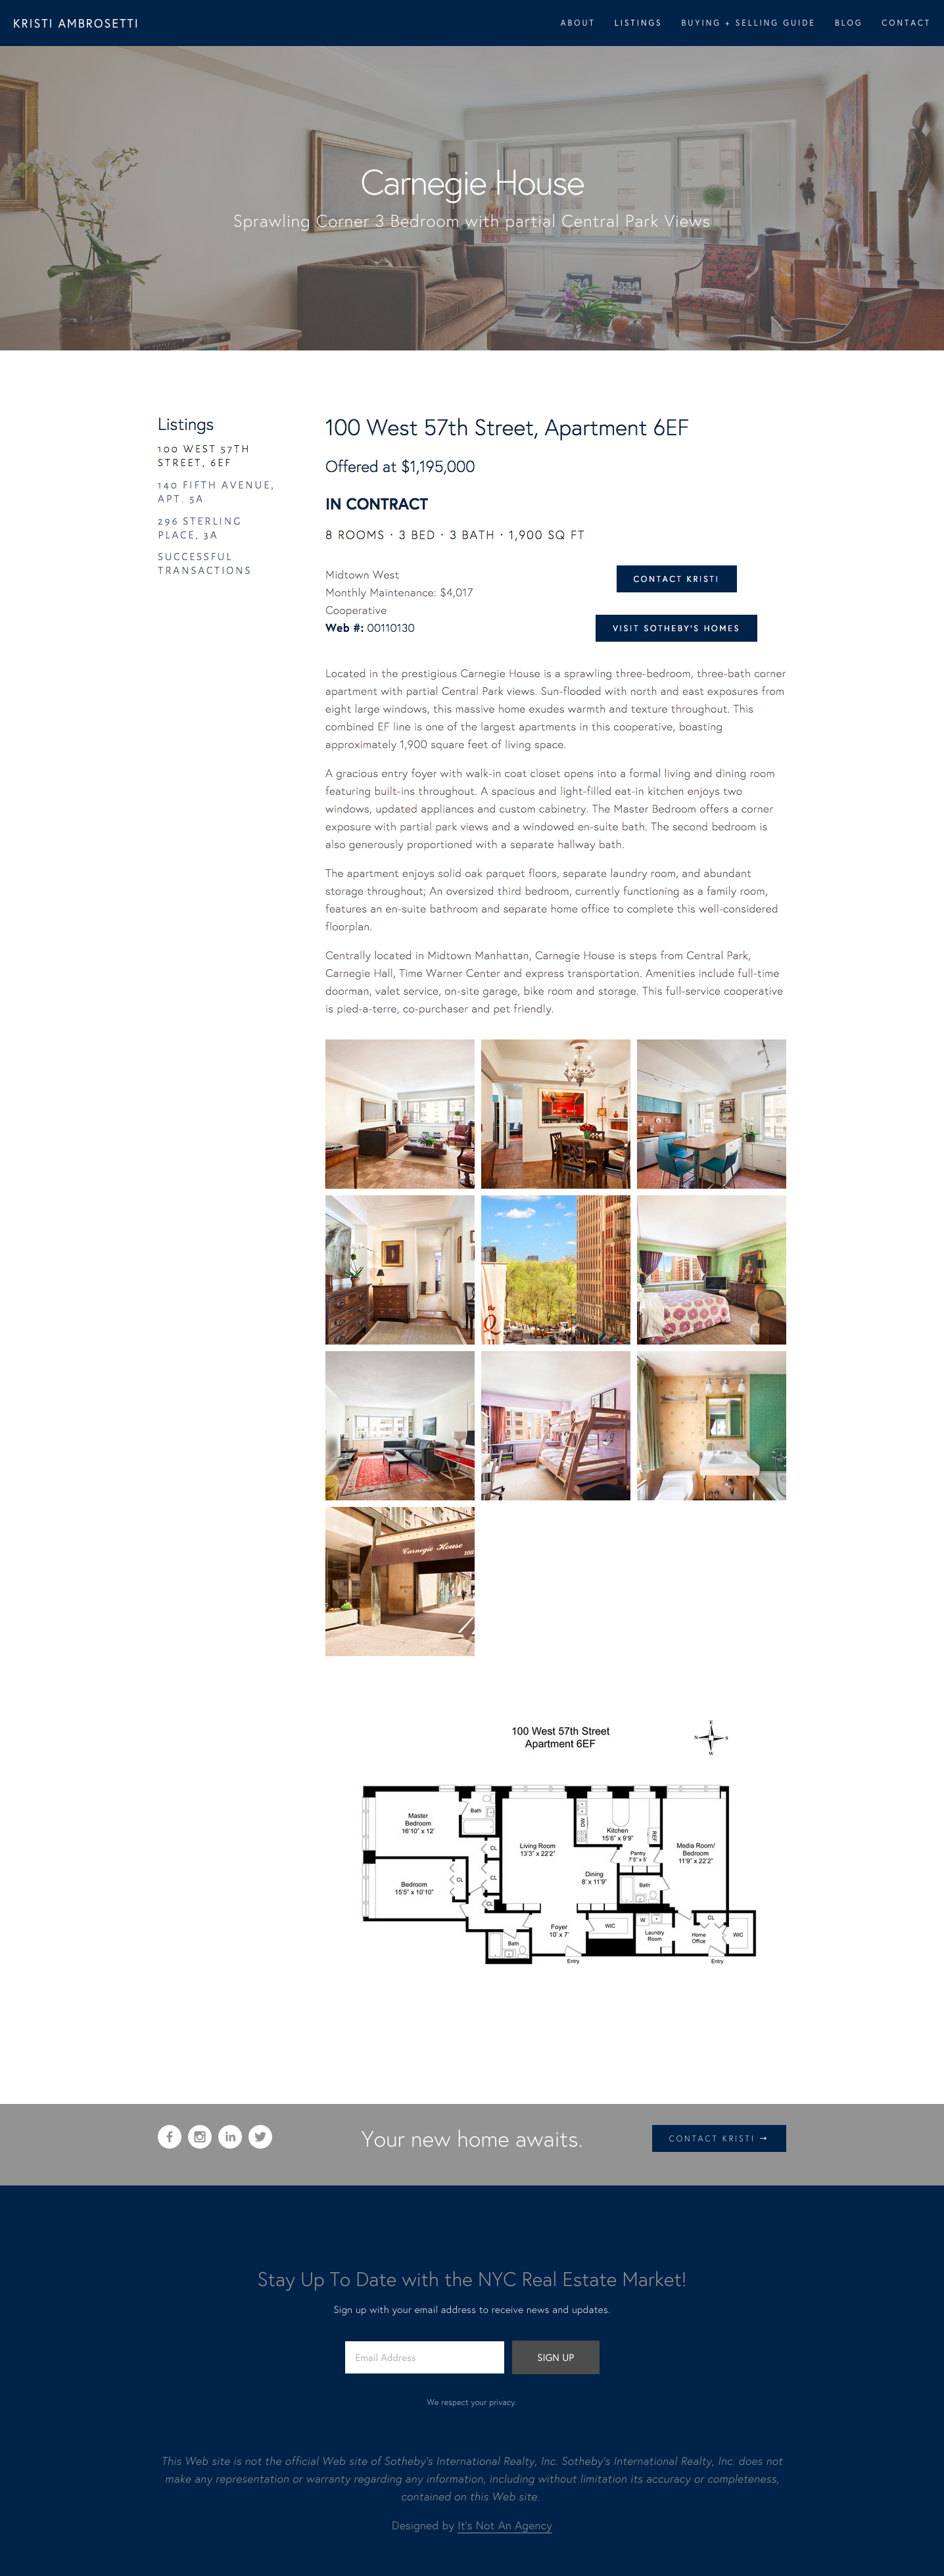 Real Estate Website_Kristi Ambrosetti1.png